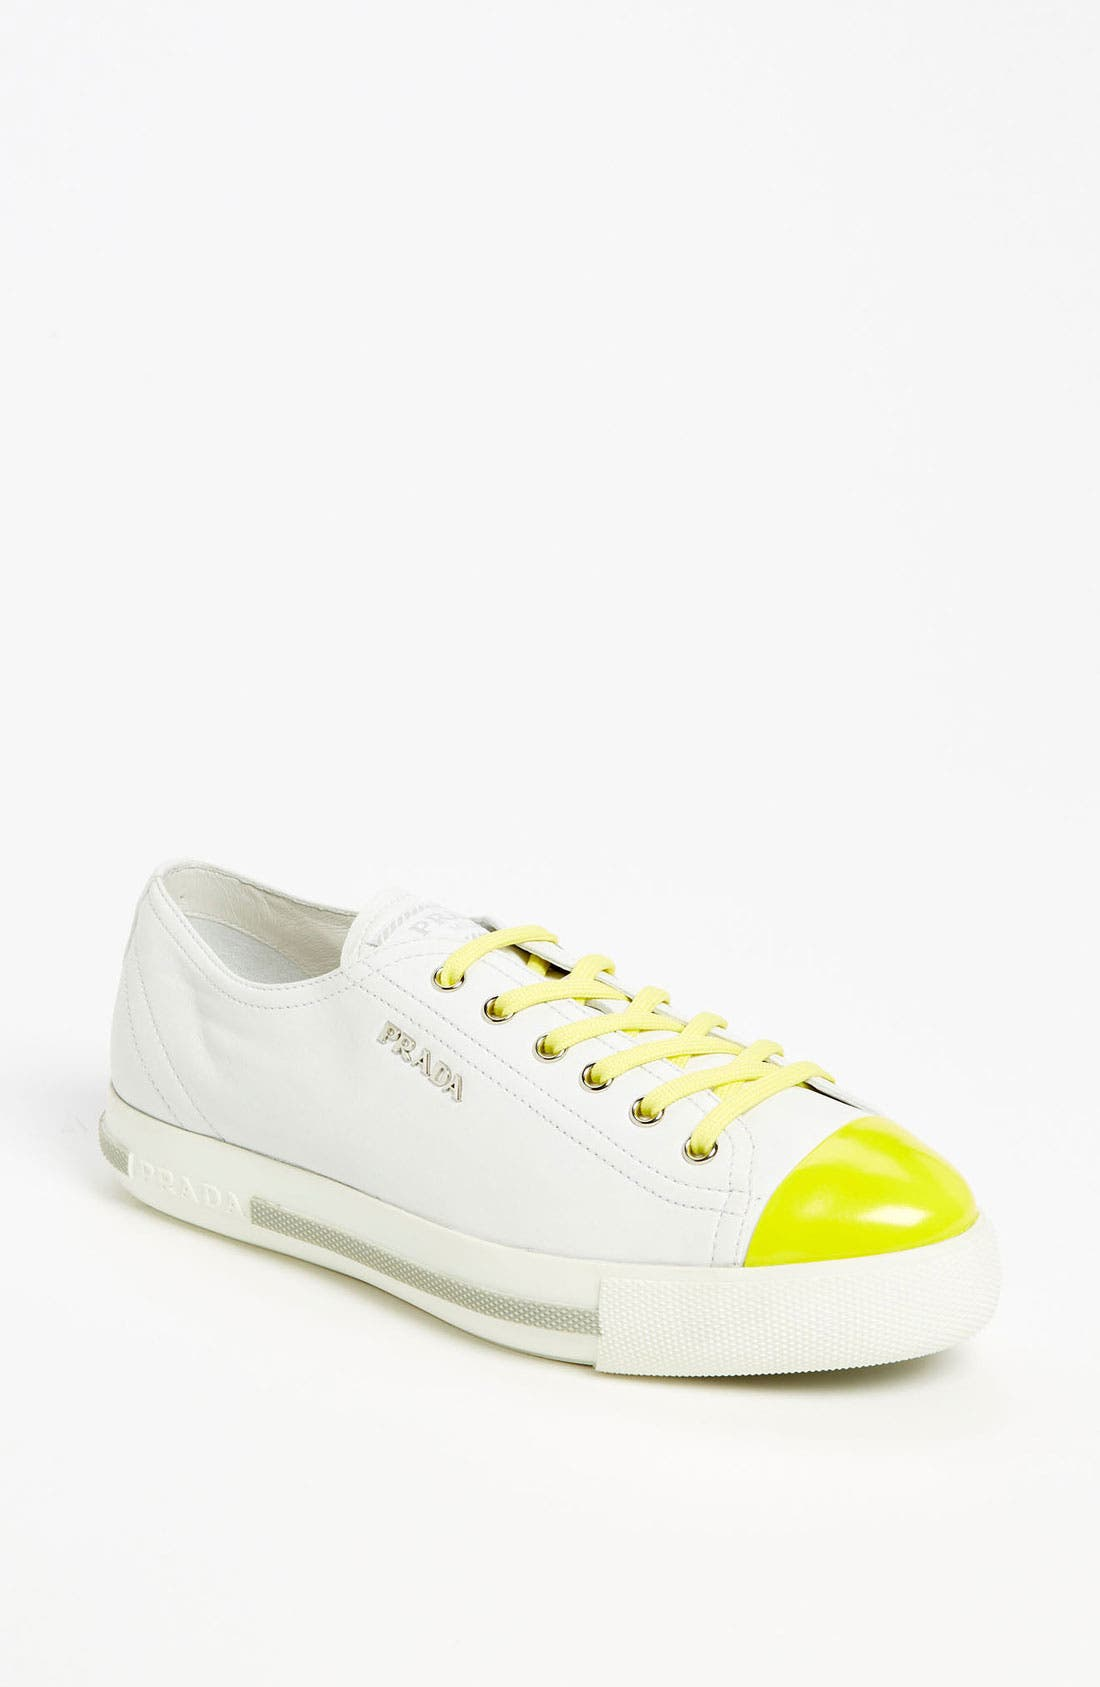 Alternate Image 1 Selected - Prada Cap Toe Sneaker